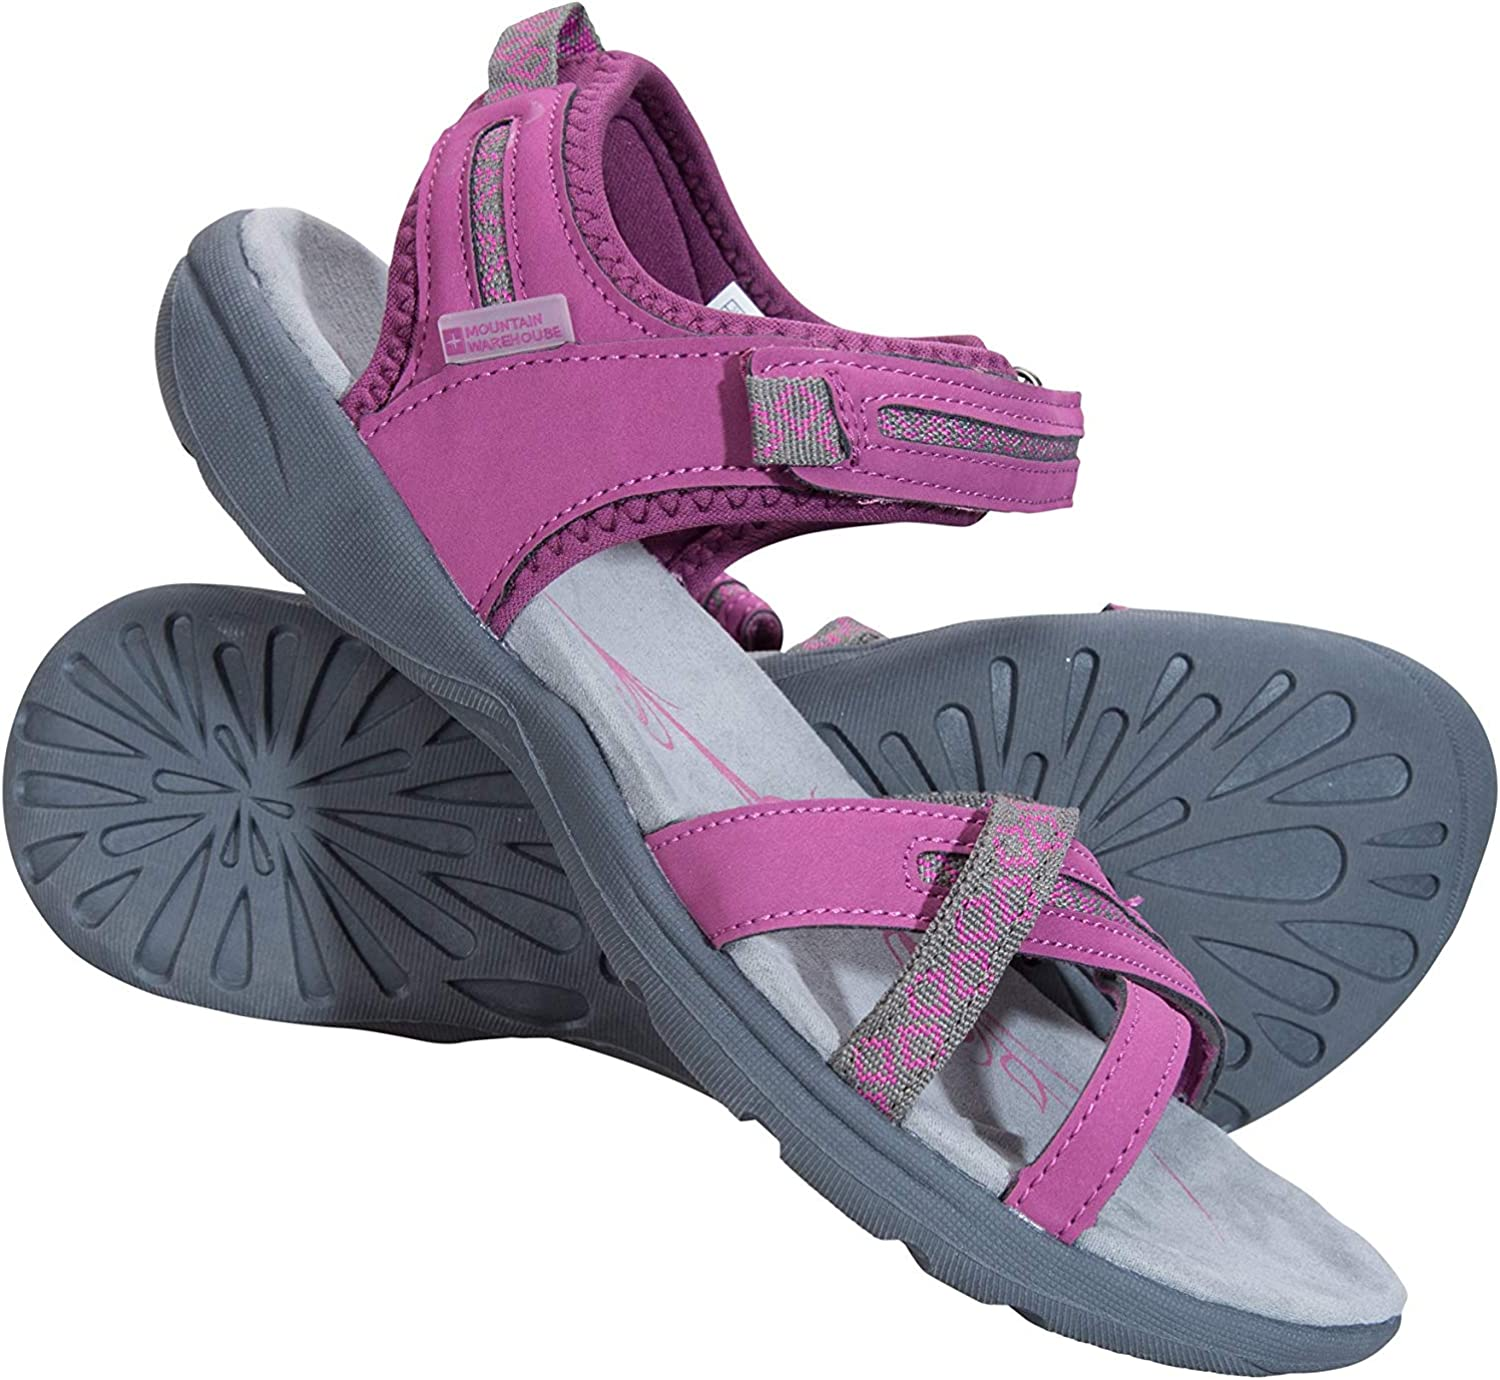 Boston Mall Mountain Warehouse Summertime Oakland Mall Womens Sandals Sho - Casual Ladies